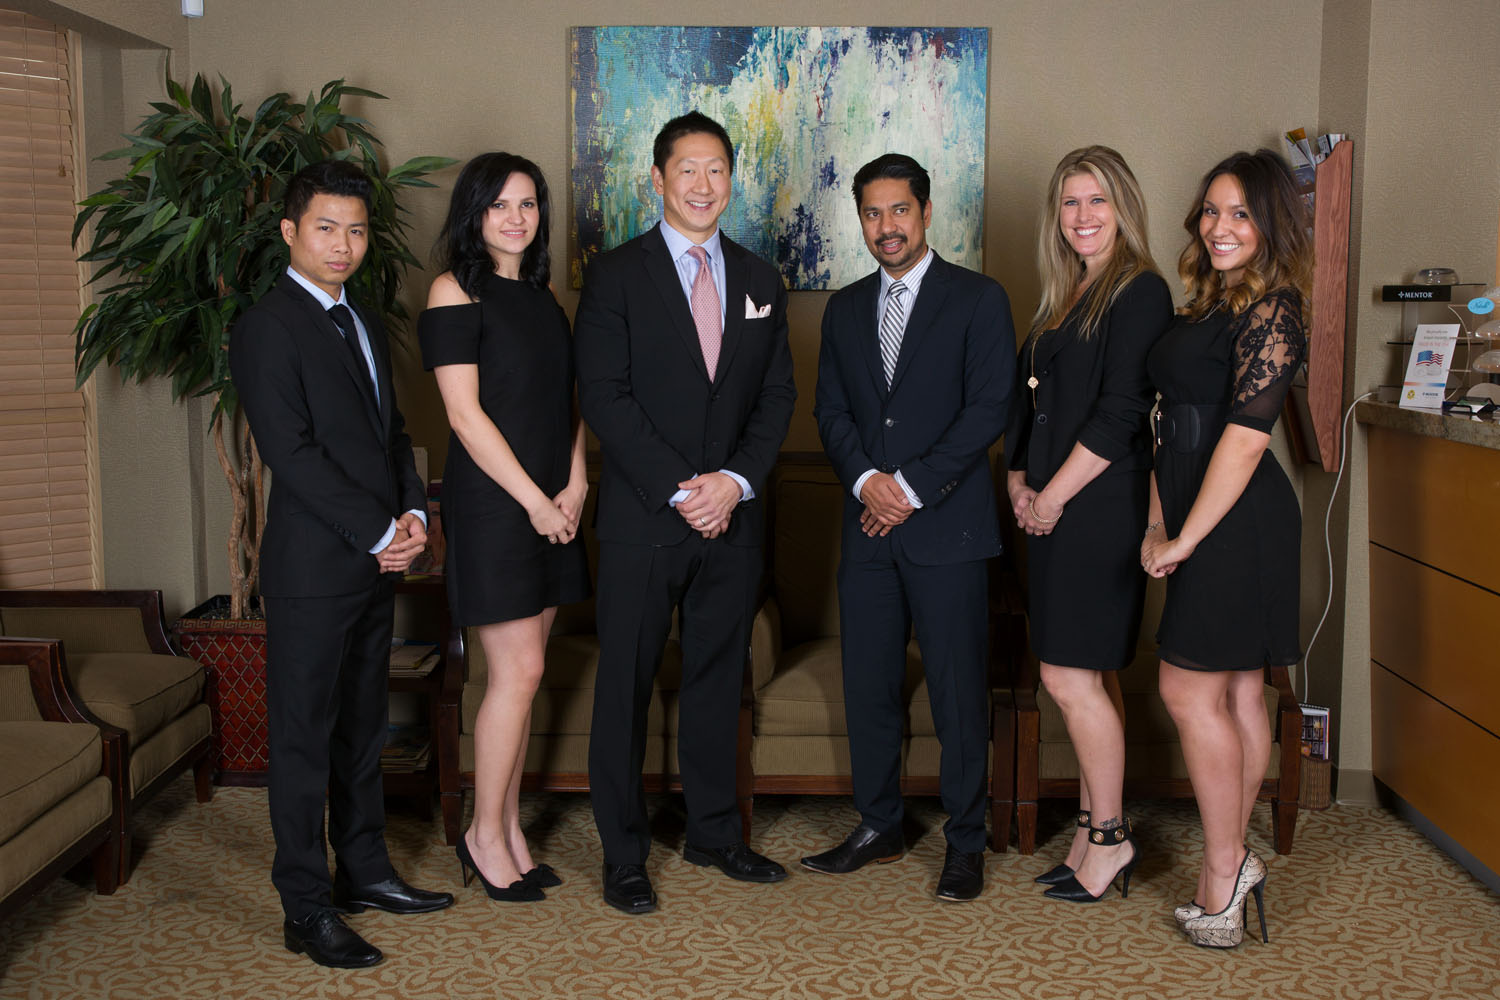 Seattle Aesthetic Facial Plastic Surgery Team Dressed Up